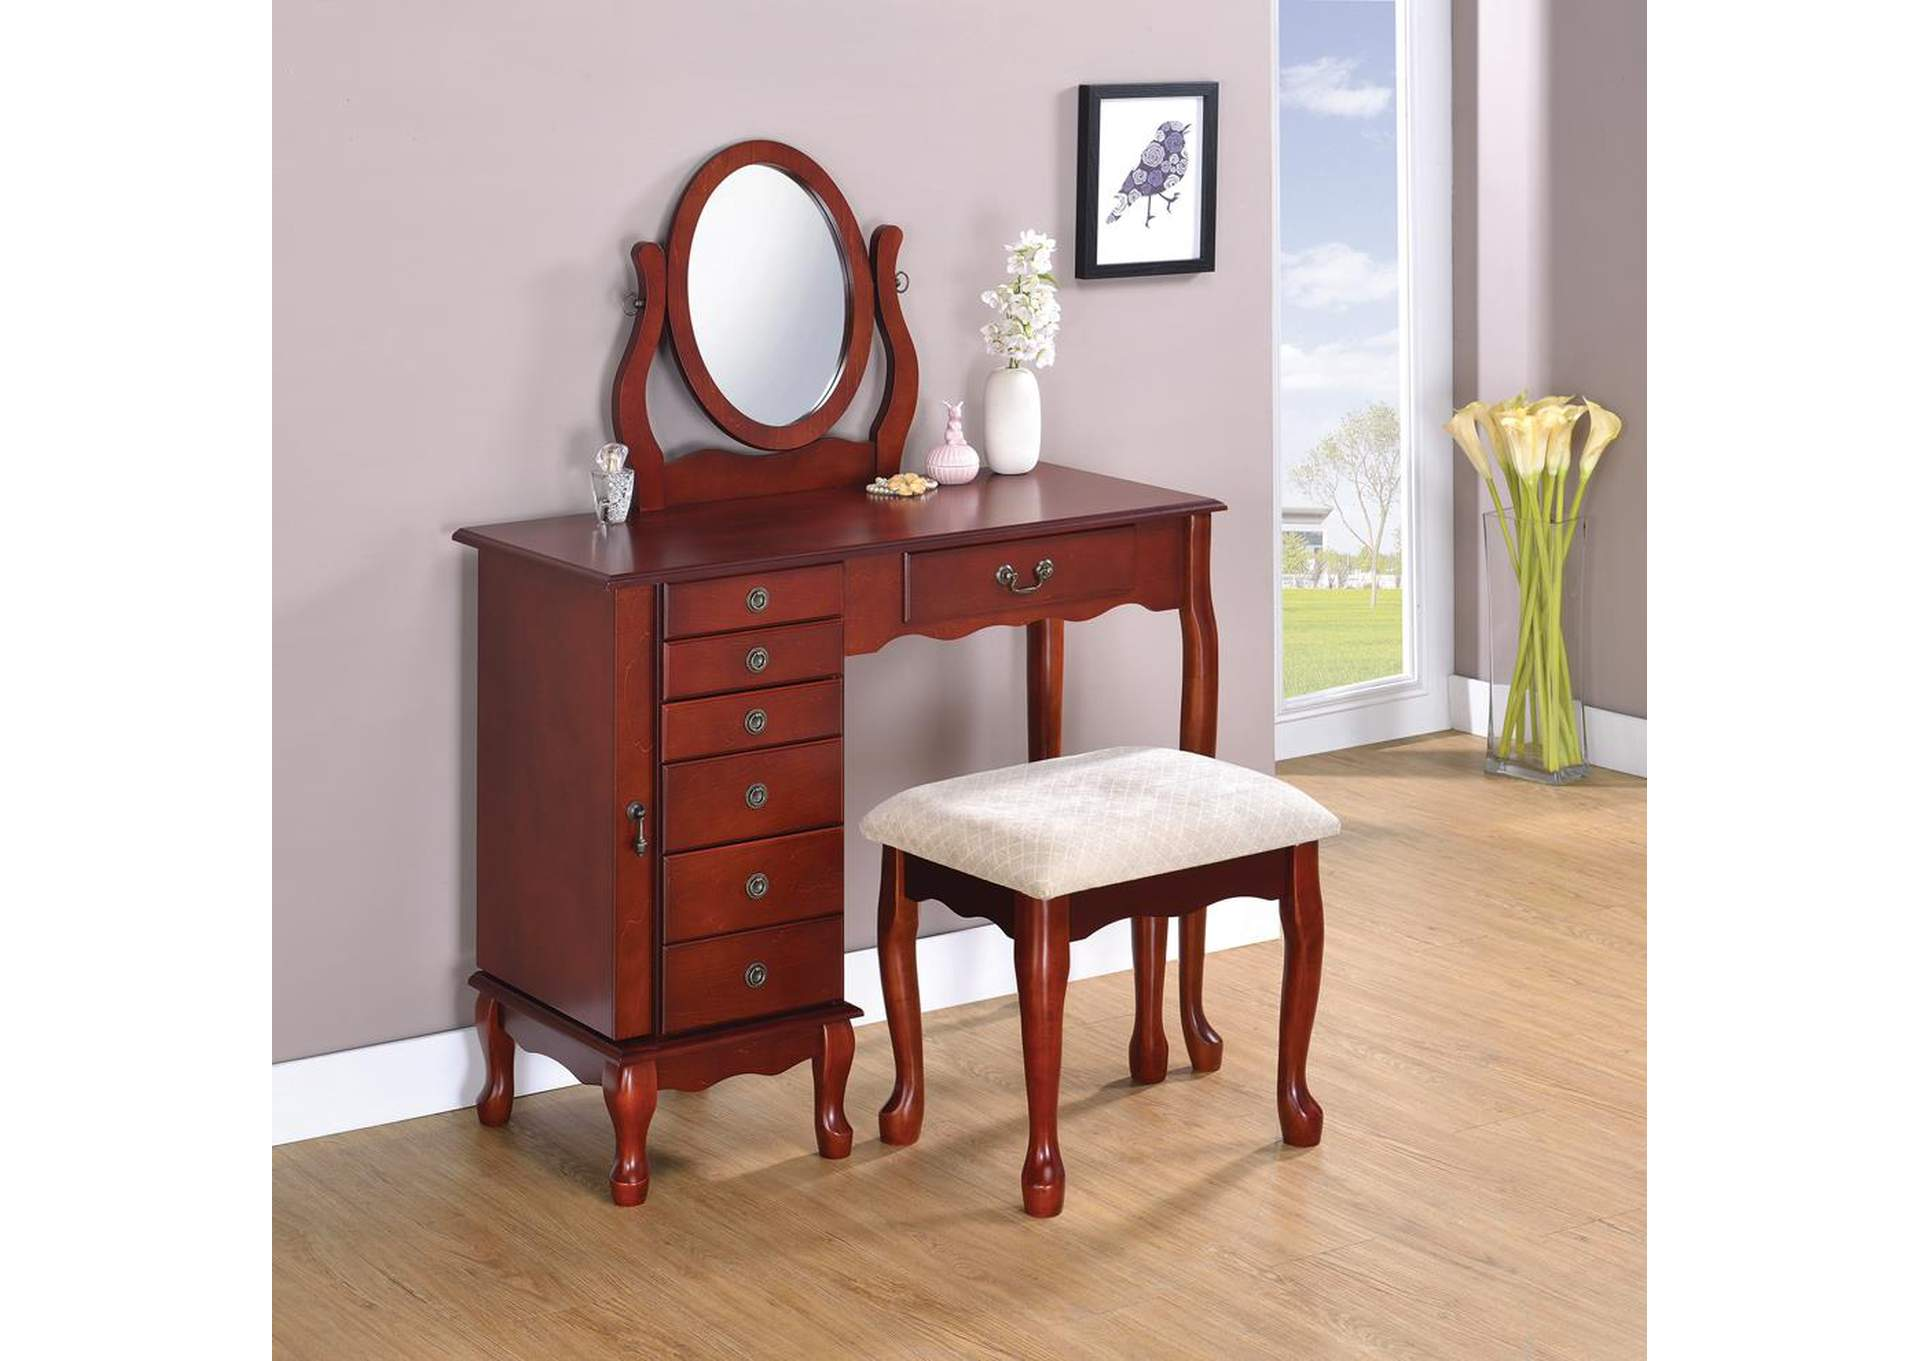 Cream & Cherry Vanity & Stool Set,ABF Coaster Furniture